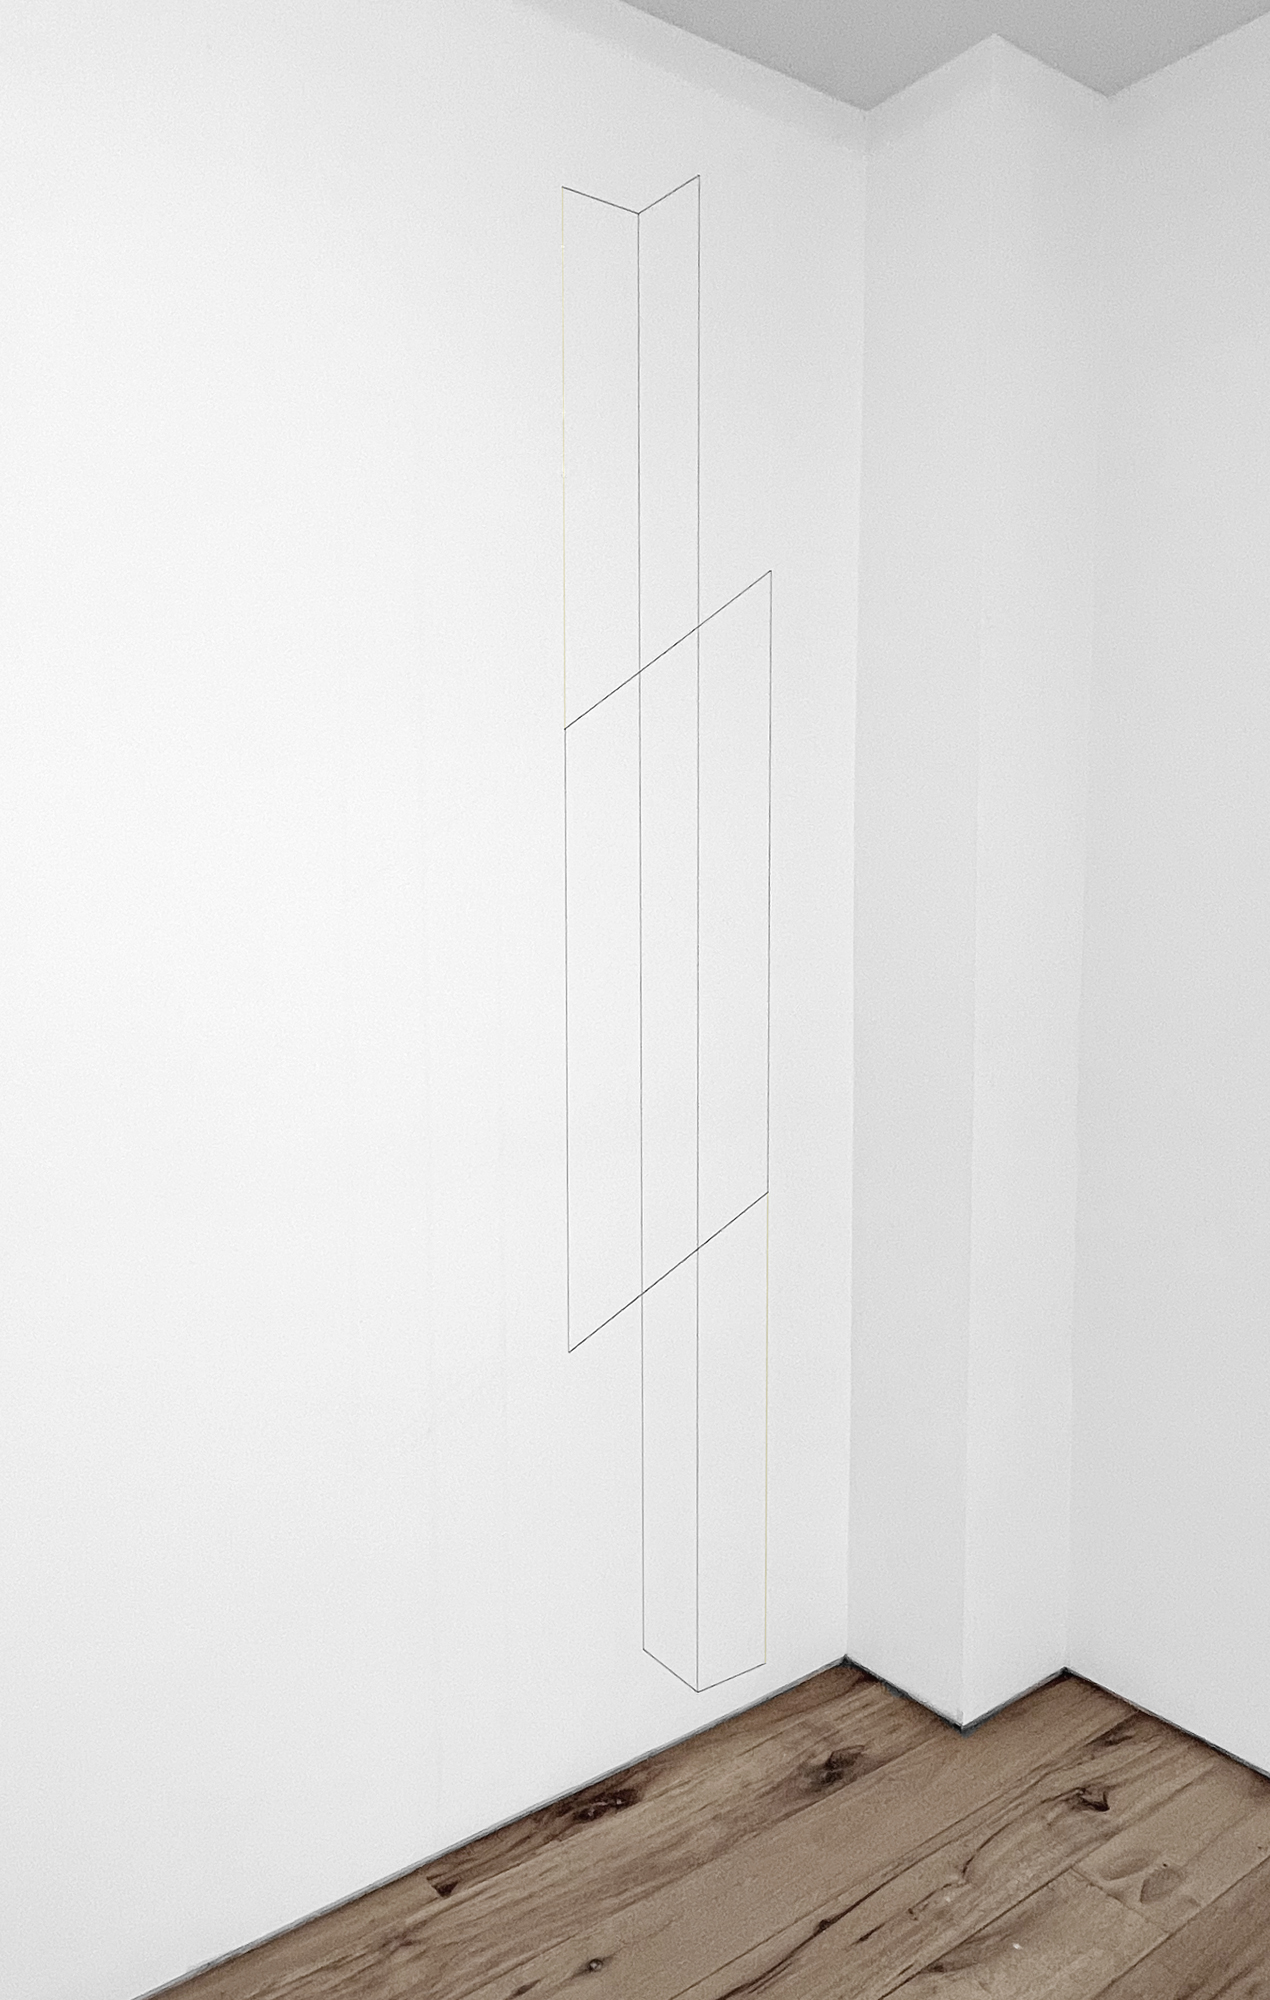 Jong Oh 2021 Metal rod, chain, fishing wire, string, paint. 62 x 8.5 x 8.5 in. 2021 Marc Straus Gallery